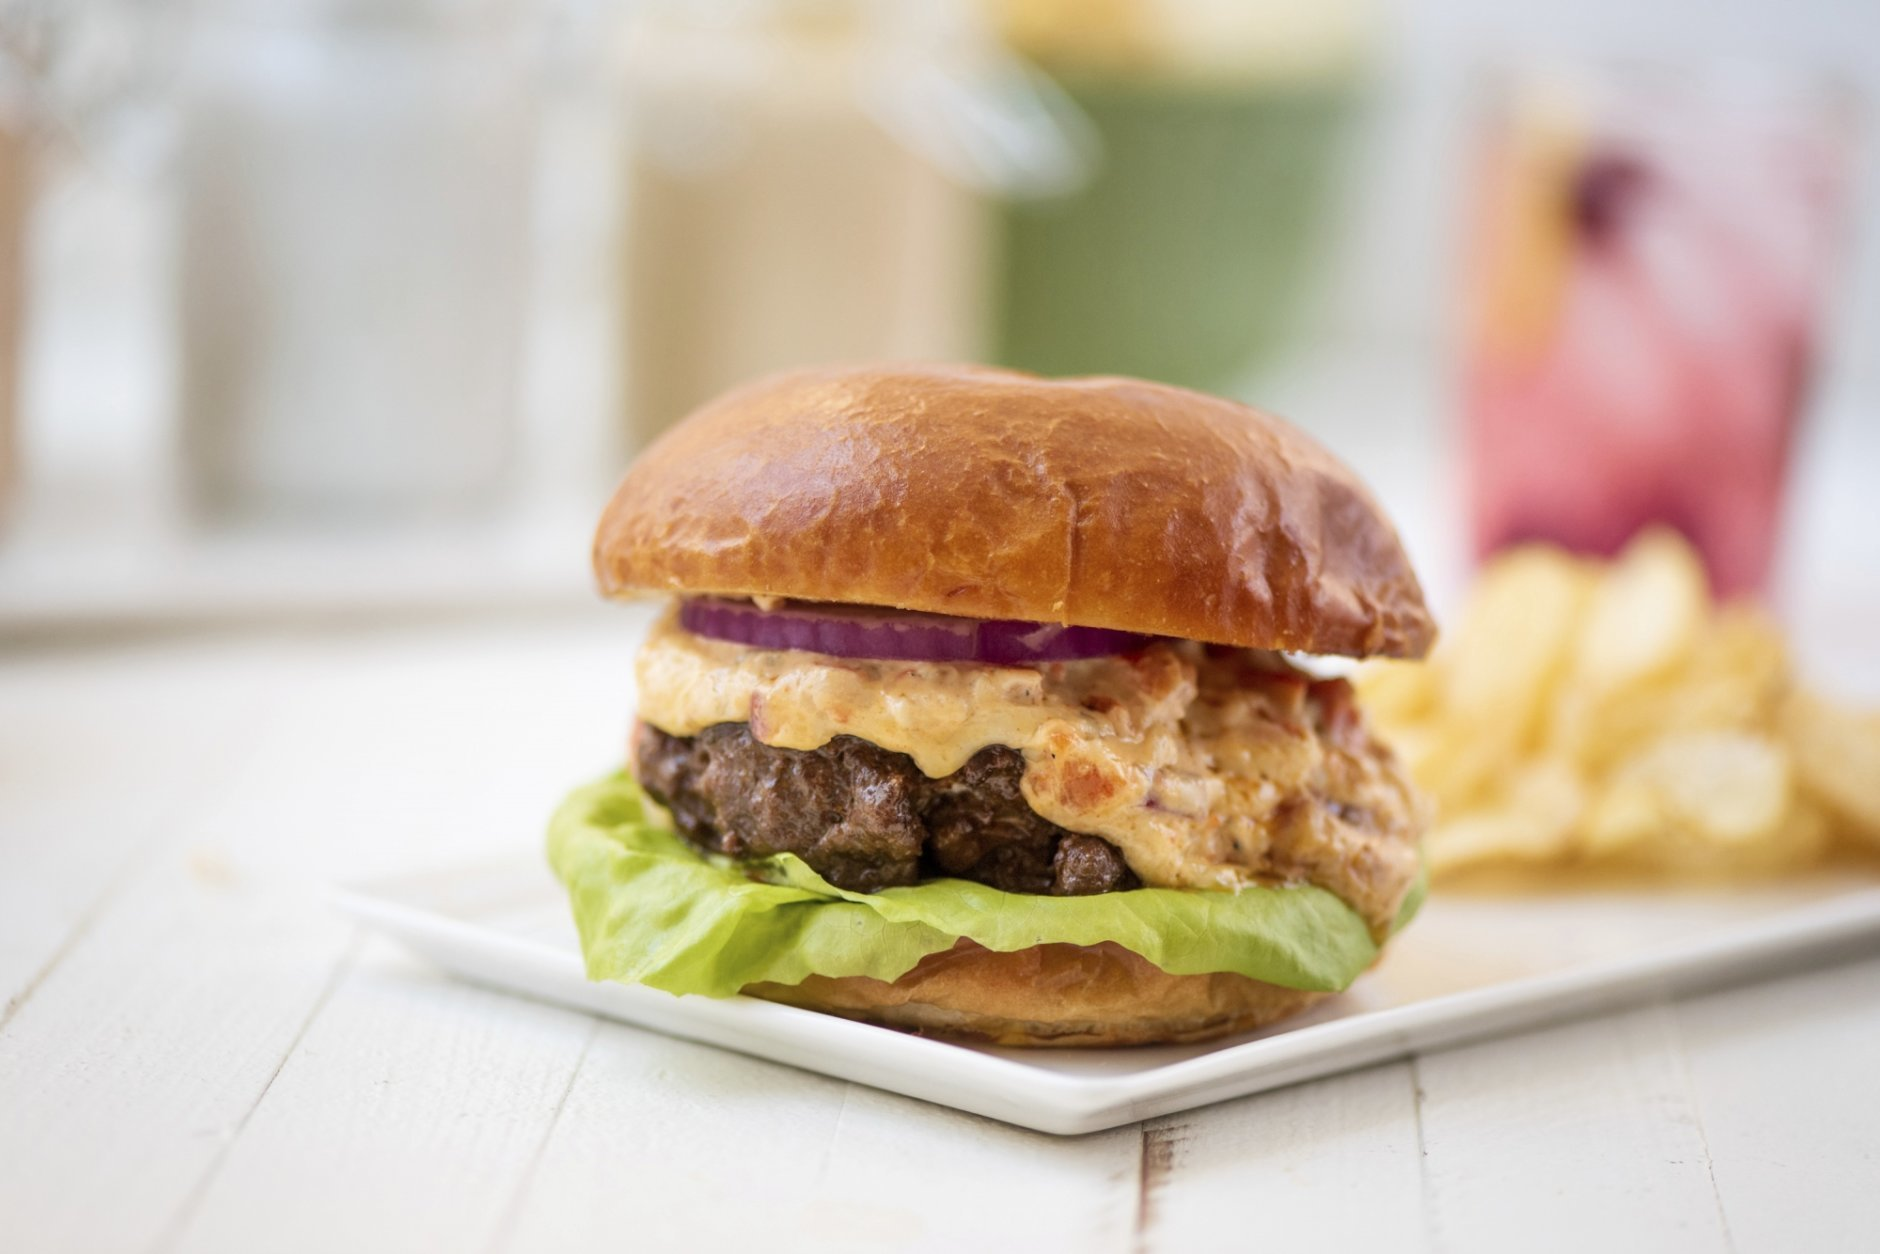 This May 2018 photo shows a burger with pimento cheese in New York. This dish is from a recipe by Katie Workman. (Cheyenne Cohen via AP)